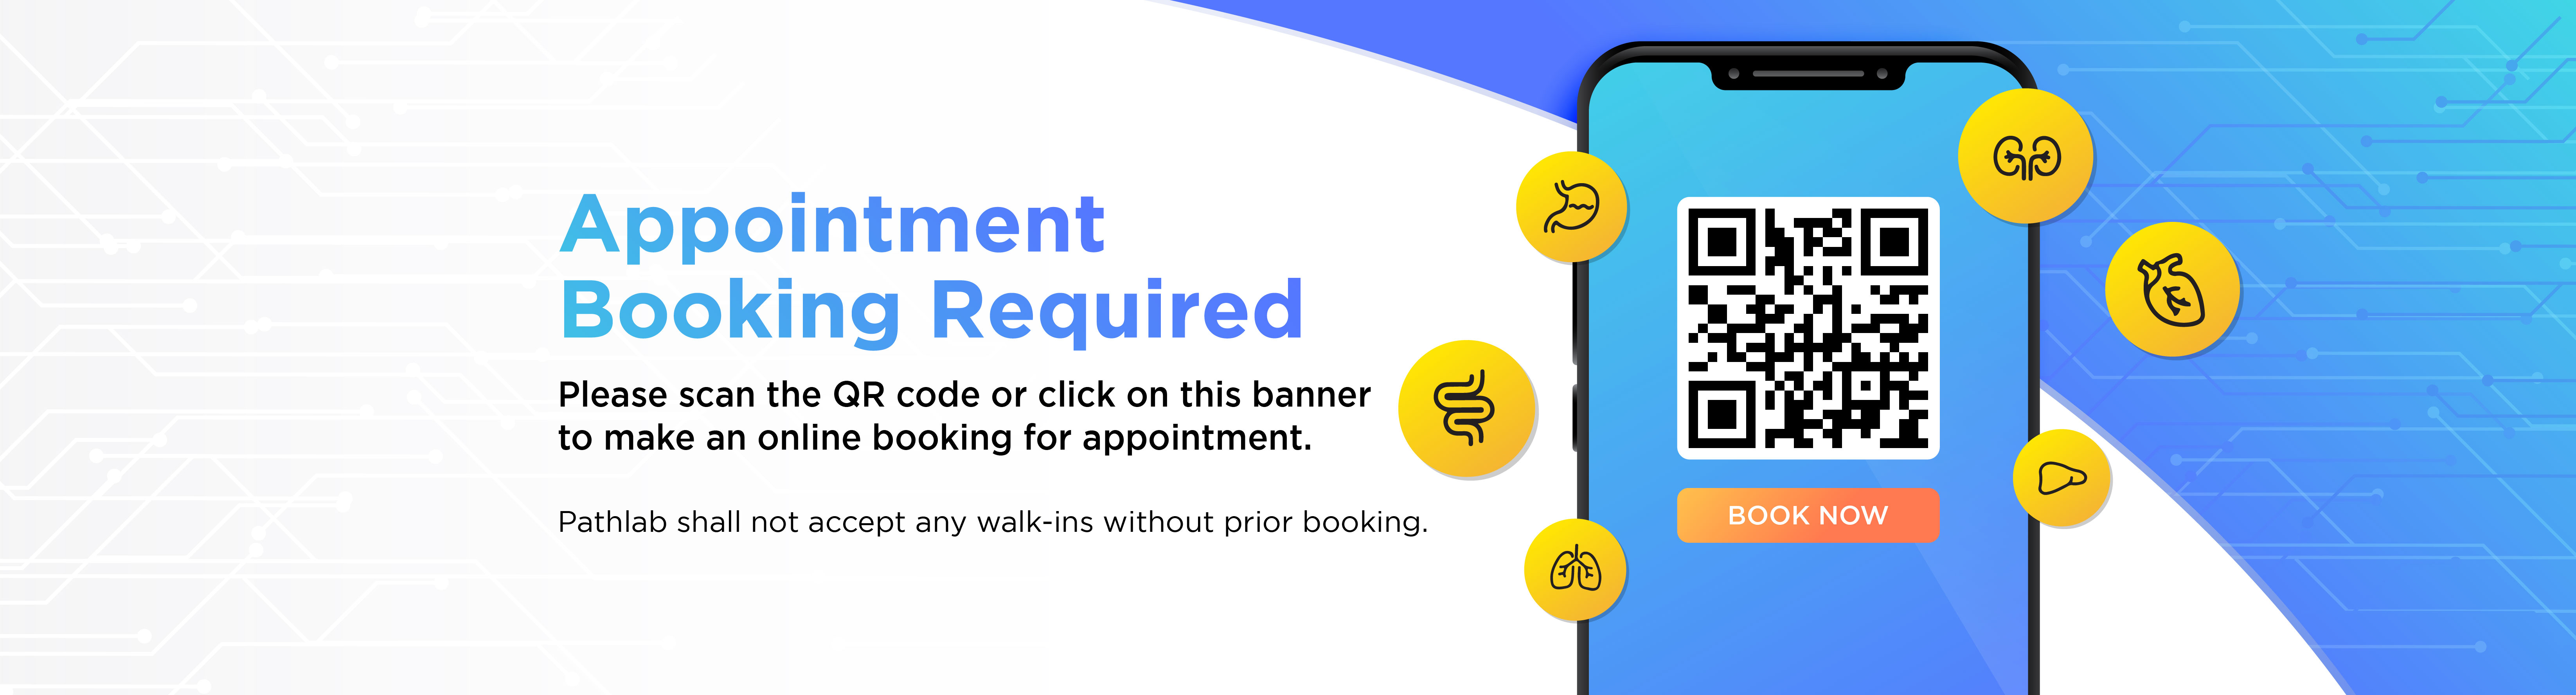 Appointment Booking Required